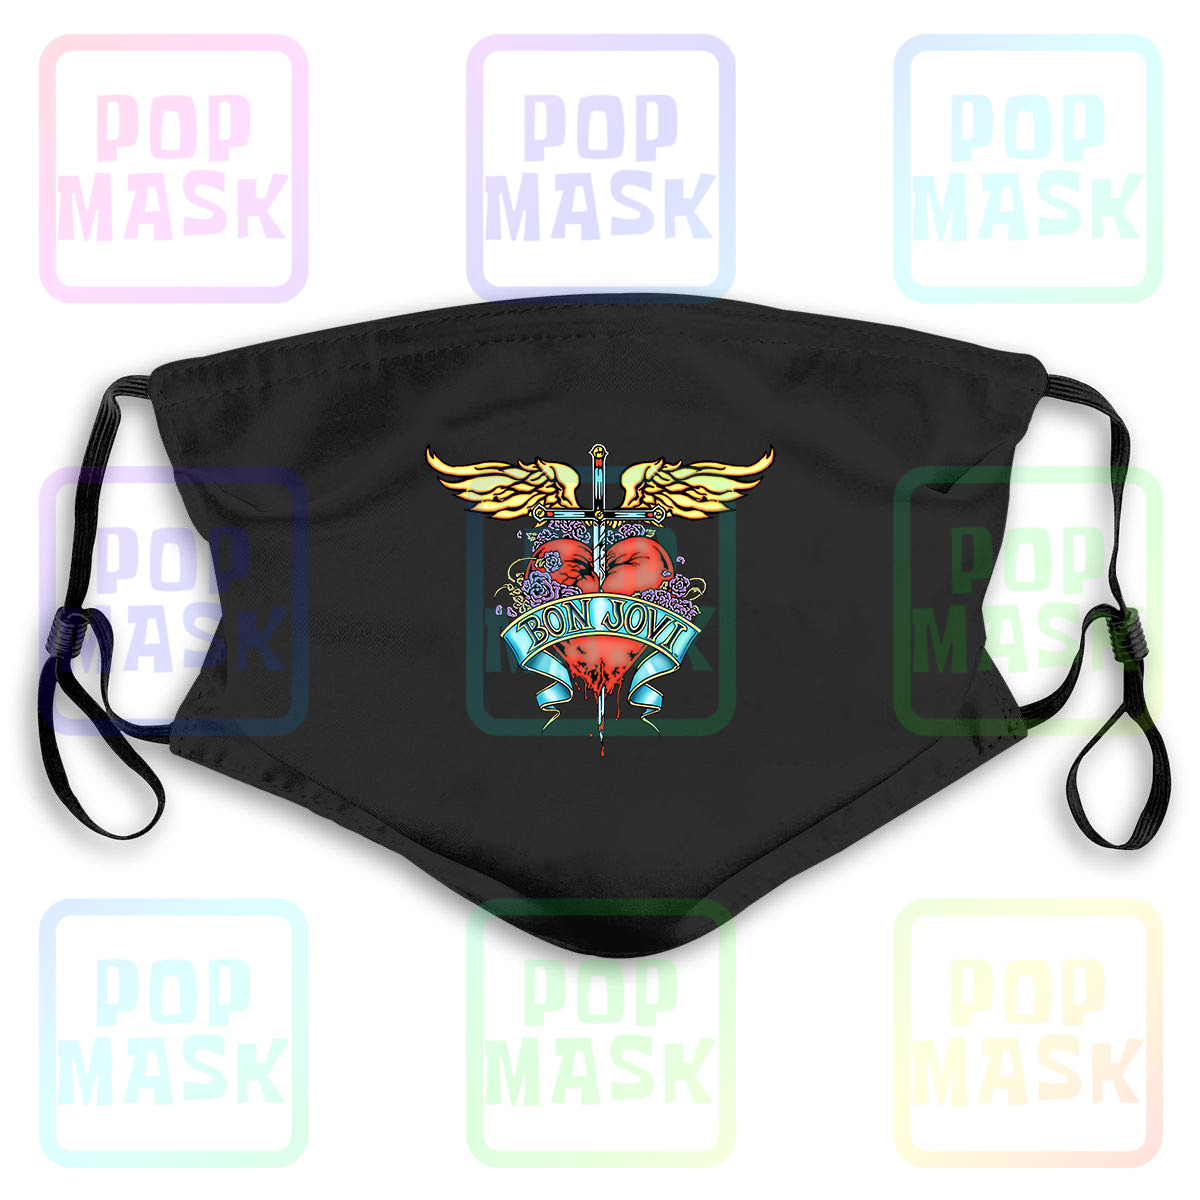 Bon Jovi Heart And Dagger Washable Reusable Mask With 2Pcs PM2.5 Filters 5 Layers